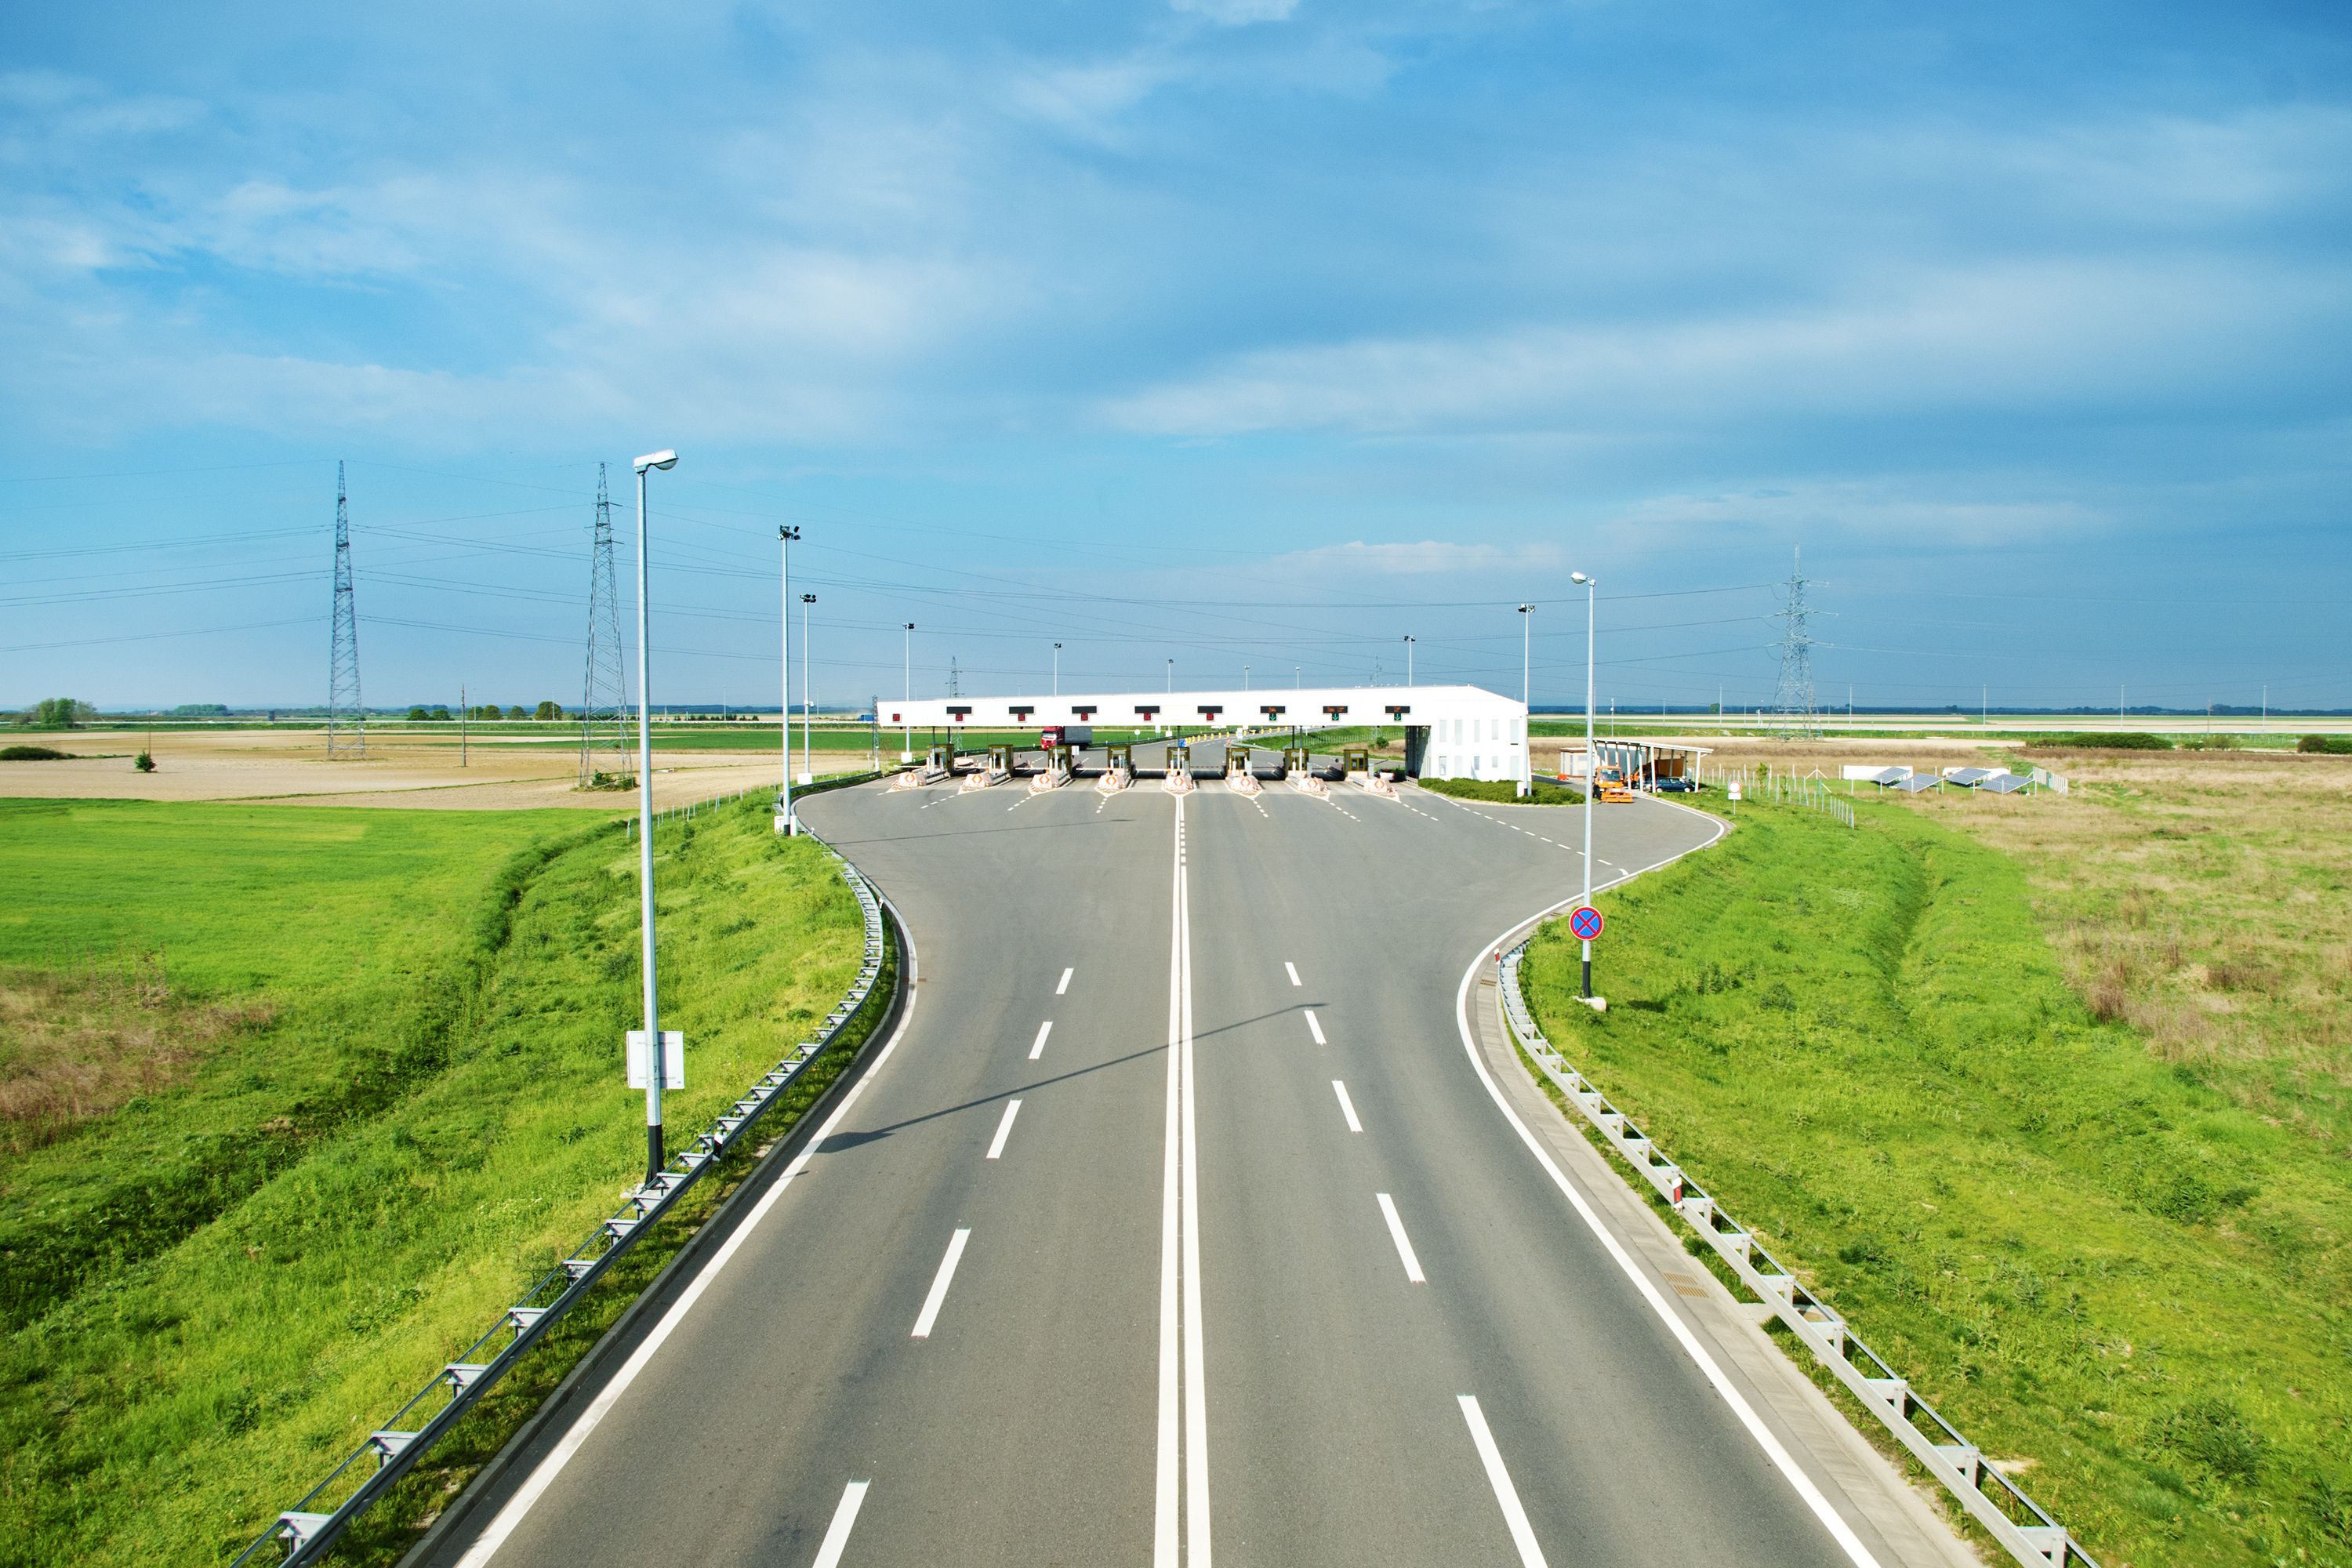 REINFORCEMENT OF THE LOMÉ-OUAGADOUGOU CORRIDOR, A COMMERCIAL STRATEGIC AXIS CONNECTING HINTERLAND TO THE PORT OF LOMÉ – UNITY HIGHWAY